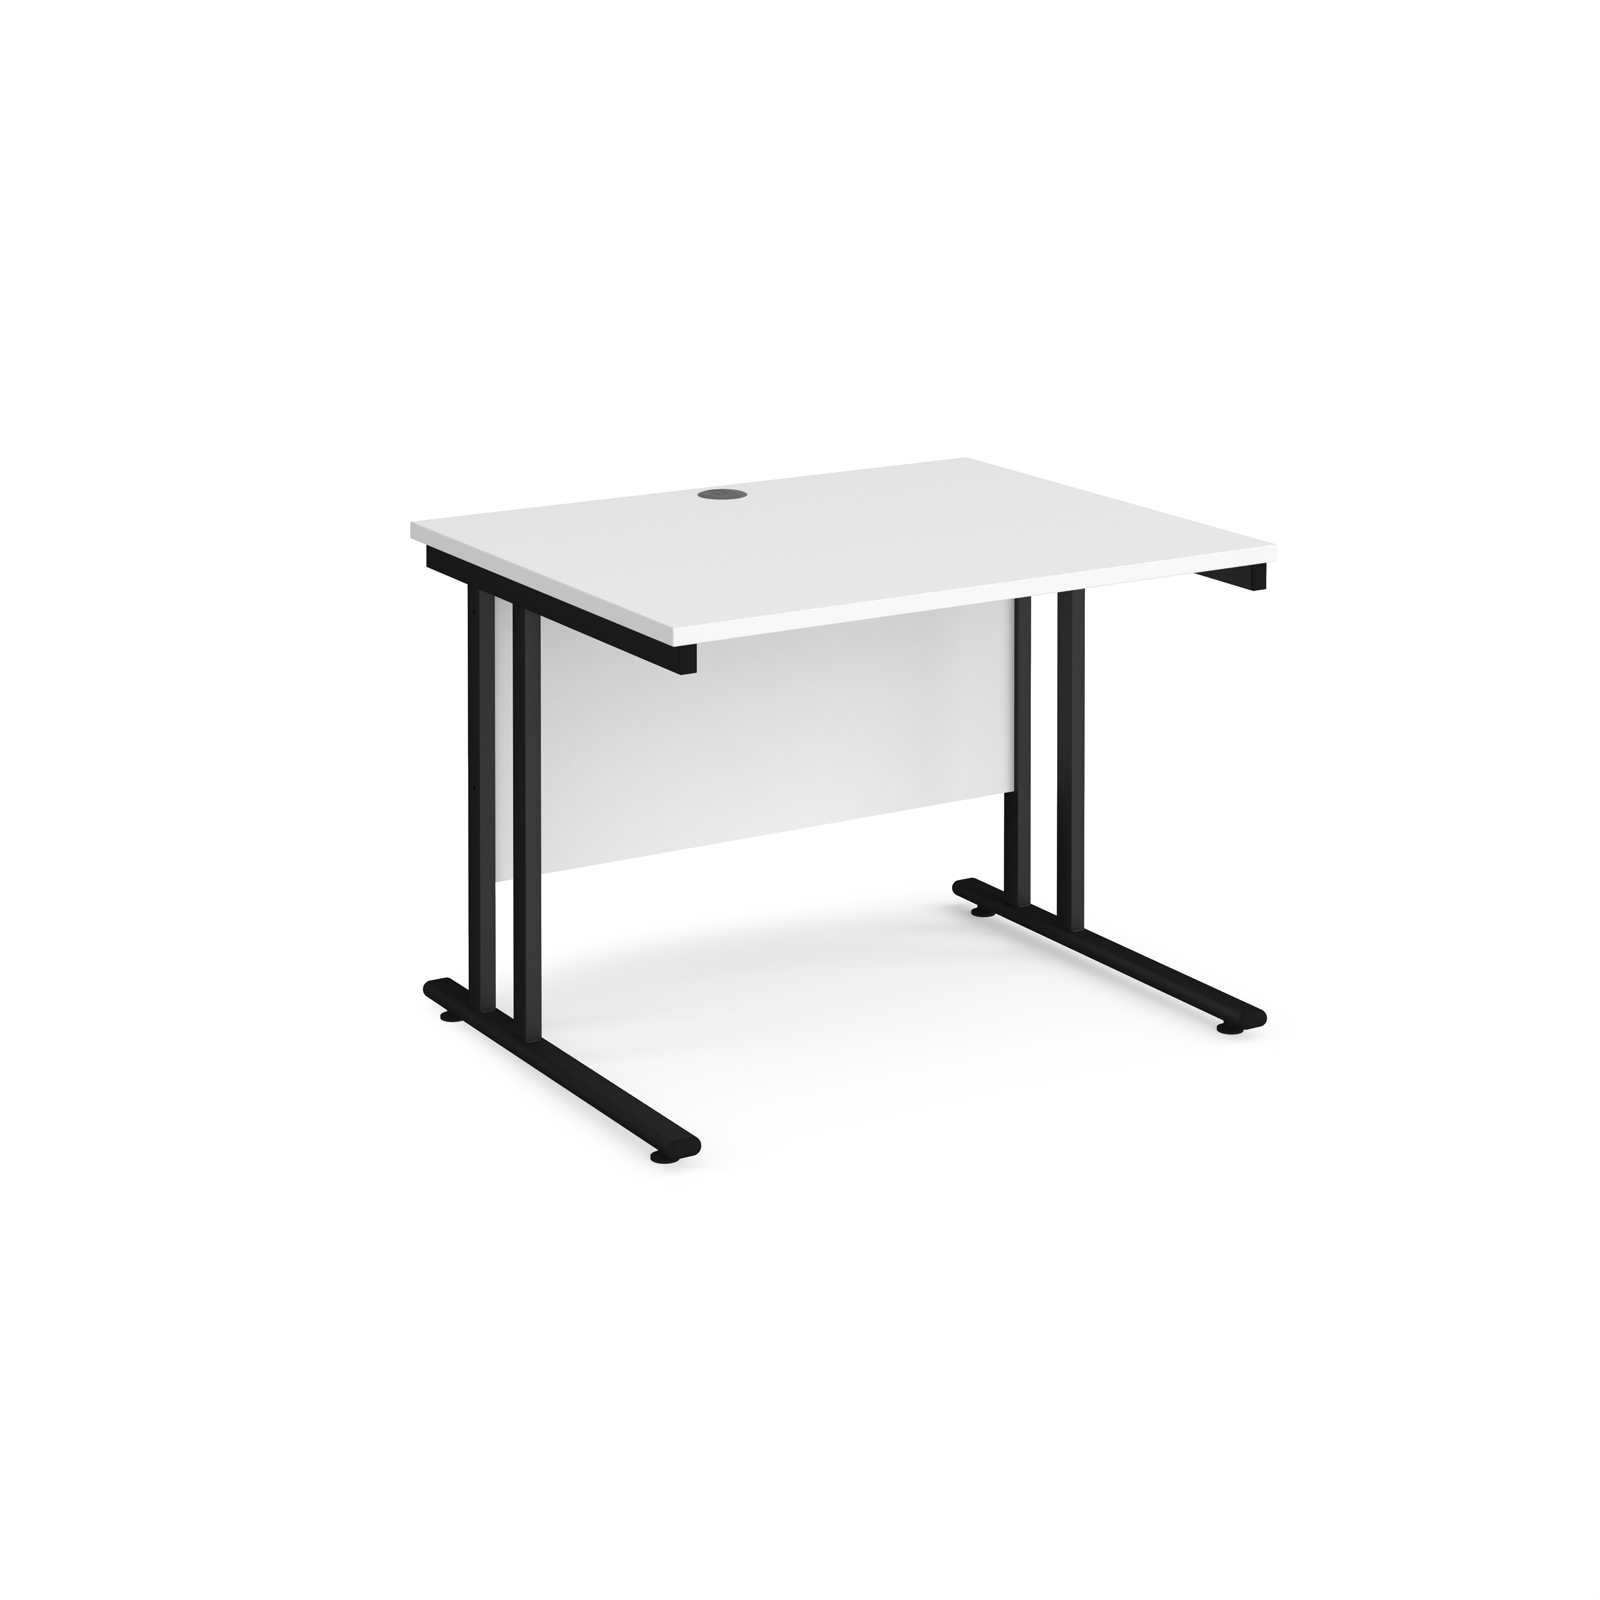 Rectangular Desks Maestro 25 straight desk 1000mm x 800mm - black cantilever leg frame, white top